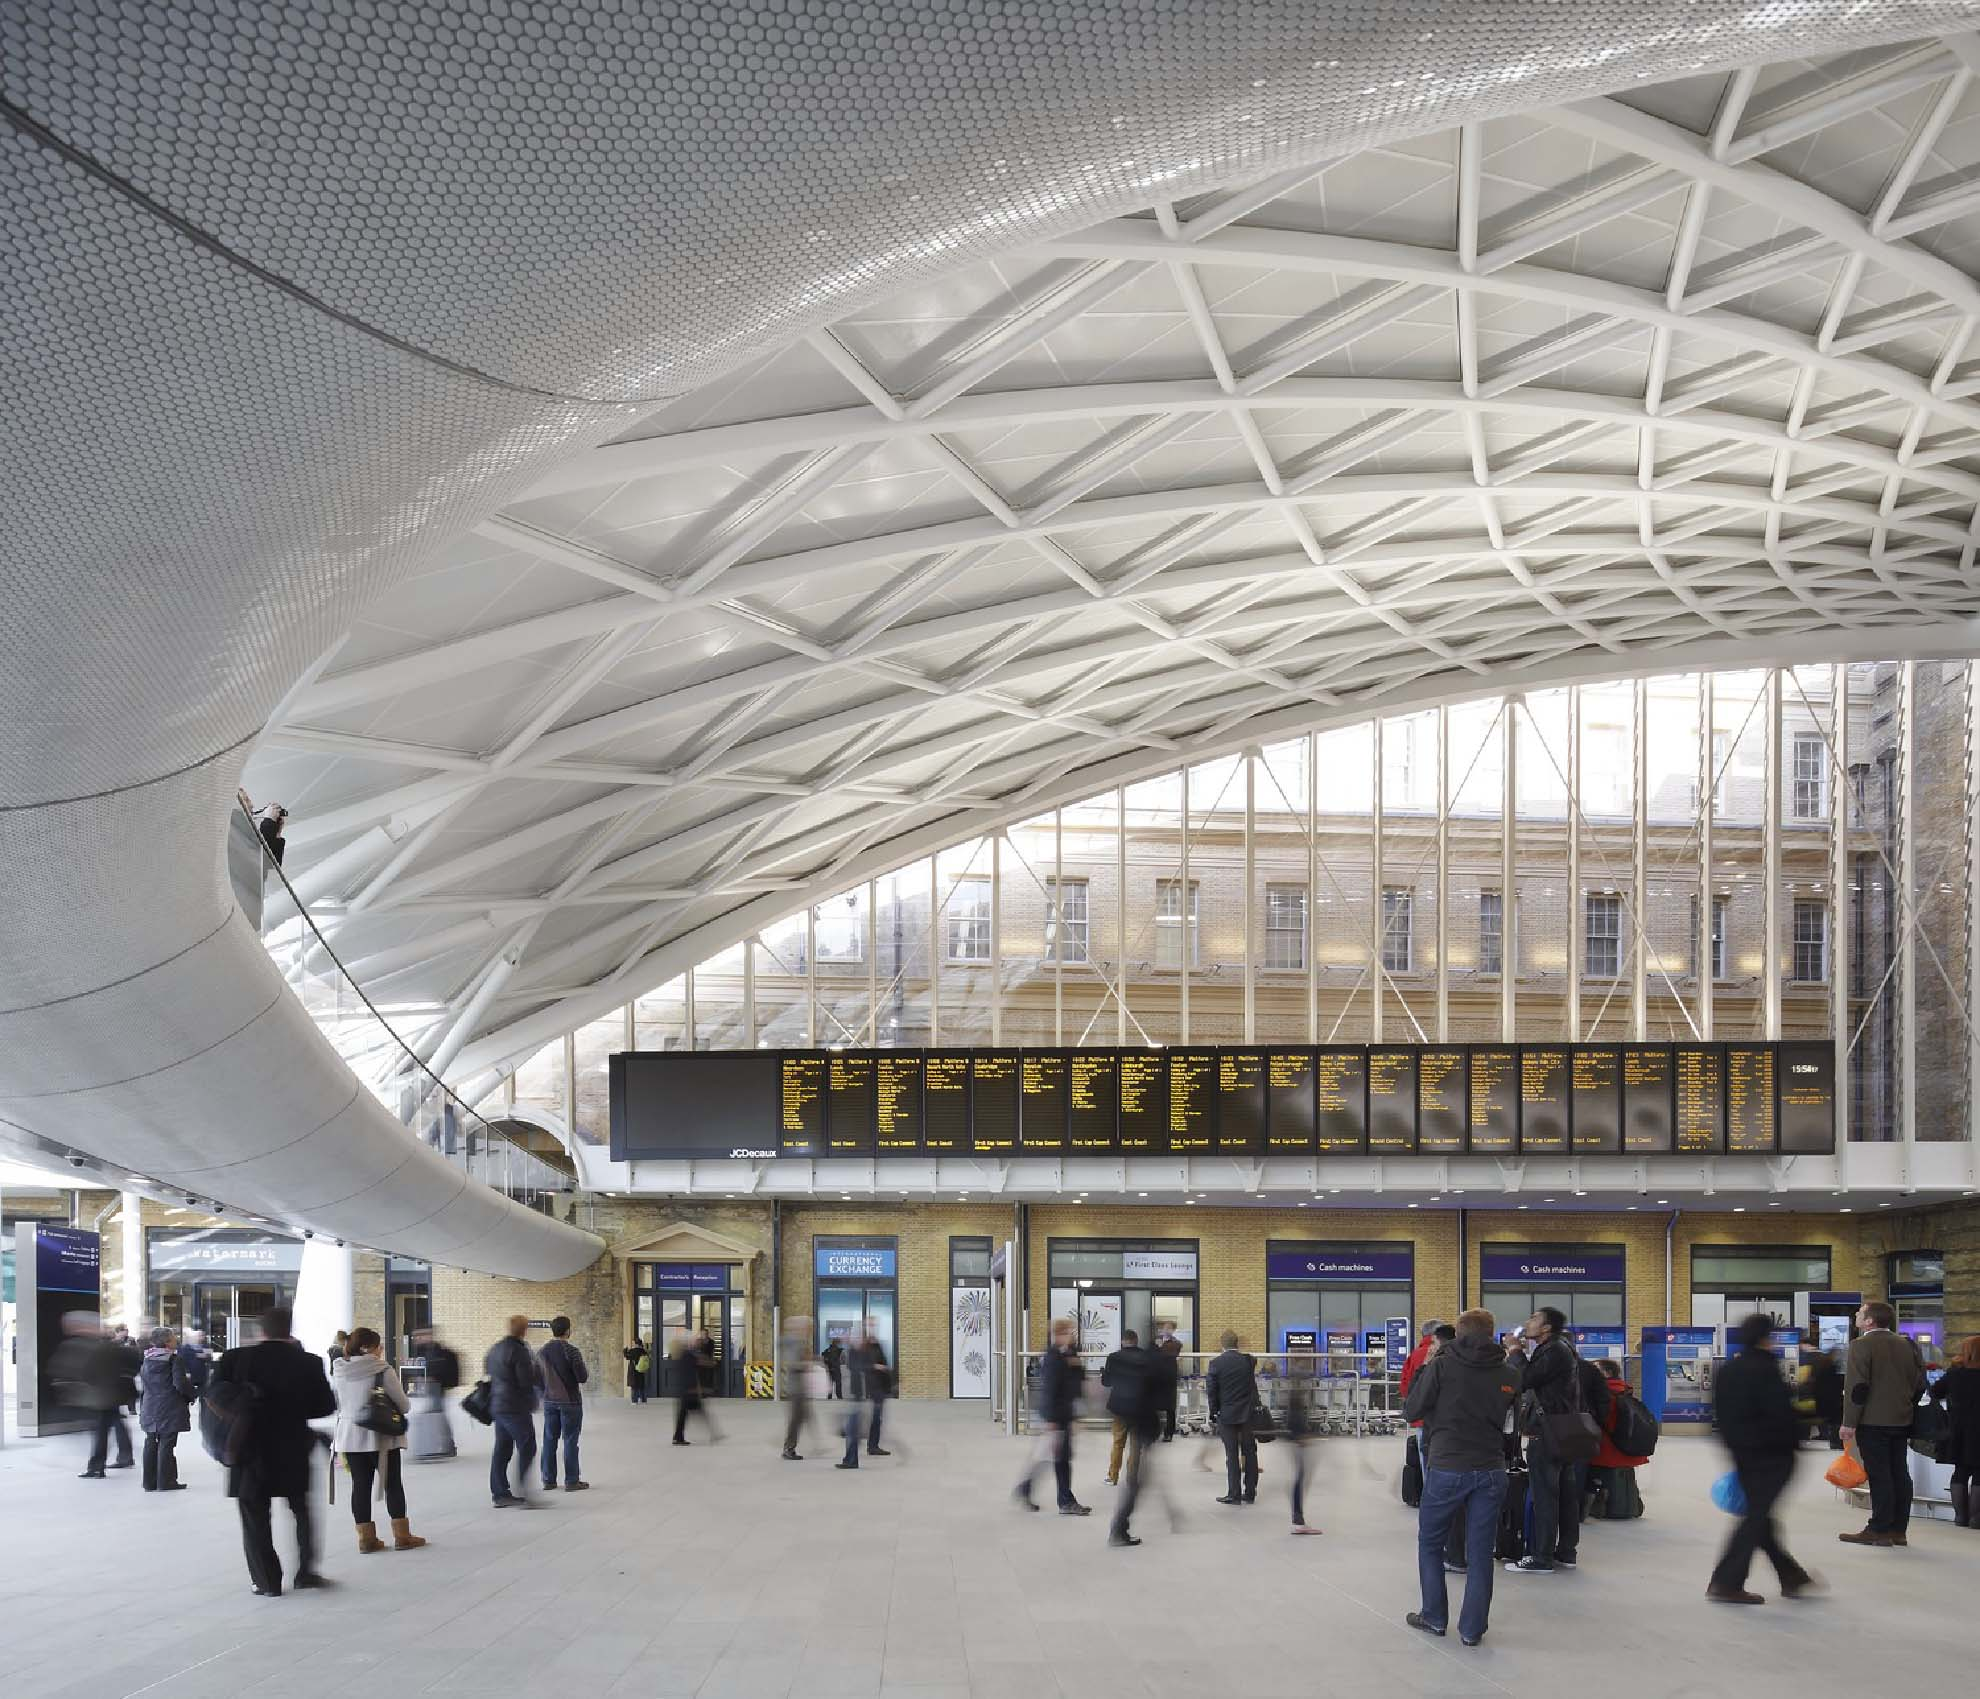 Movilidad y transporte: estación de King's Cross en Londres